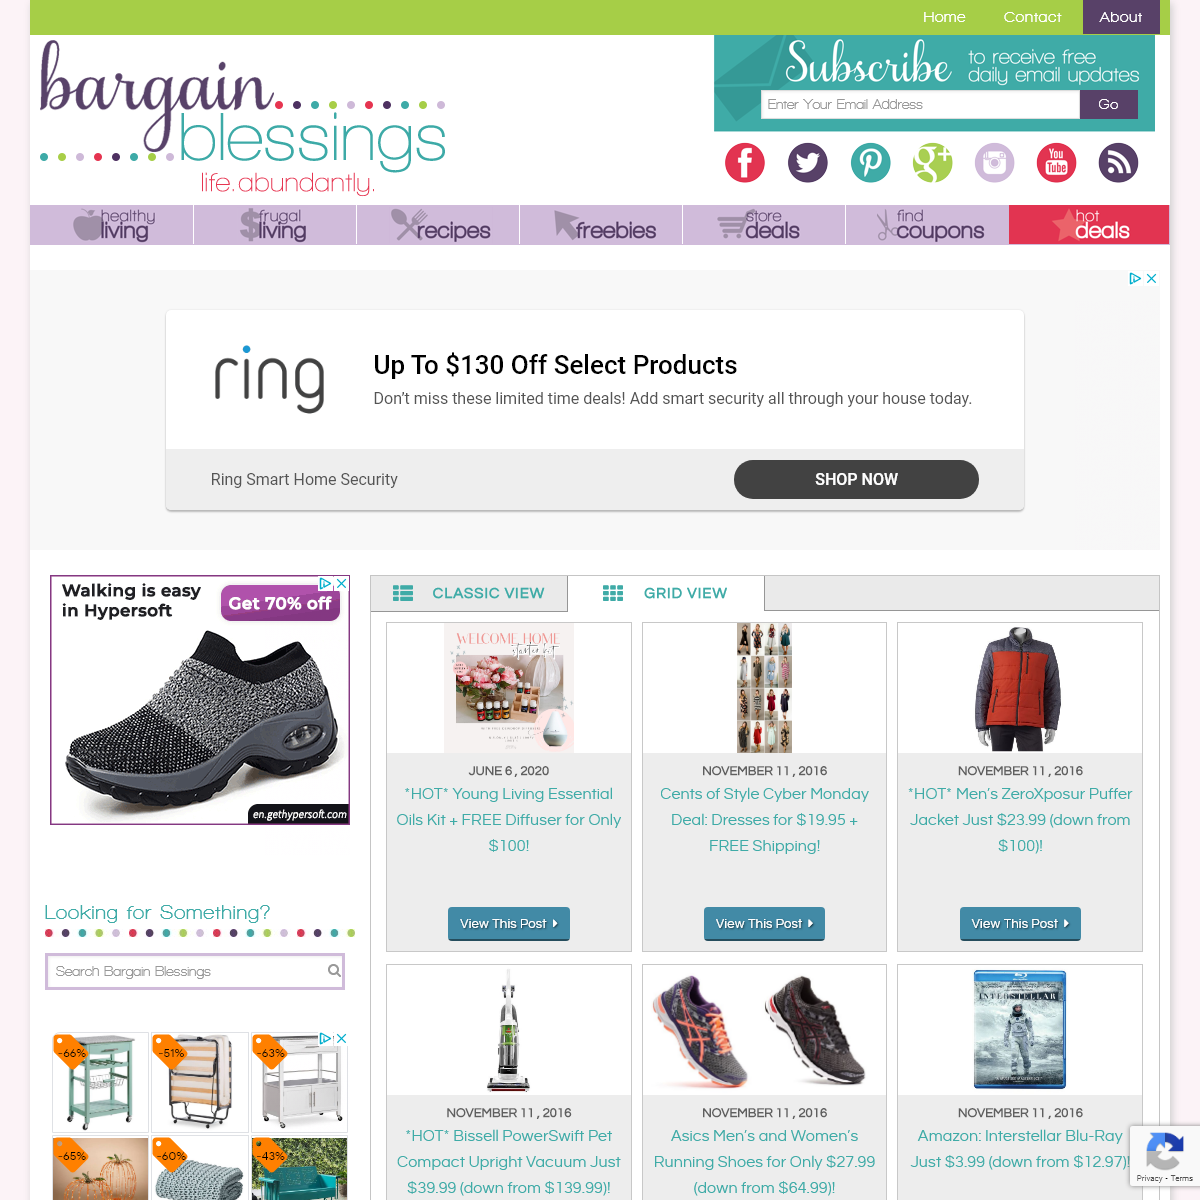 Bargain Blessings – Coupons Deals and more to help you save like you never have before! – Living Our Best Lives, On a Budget